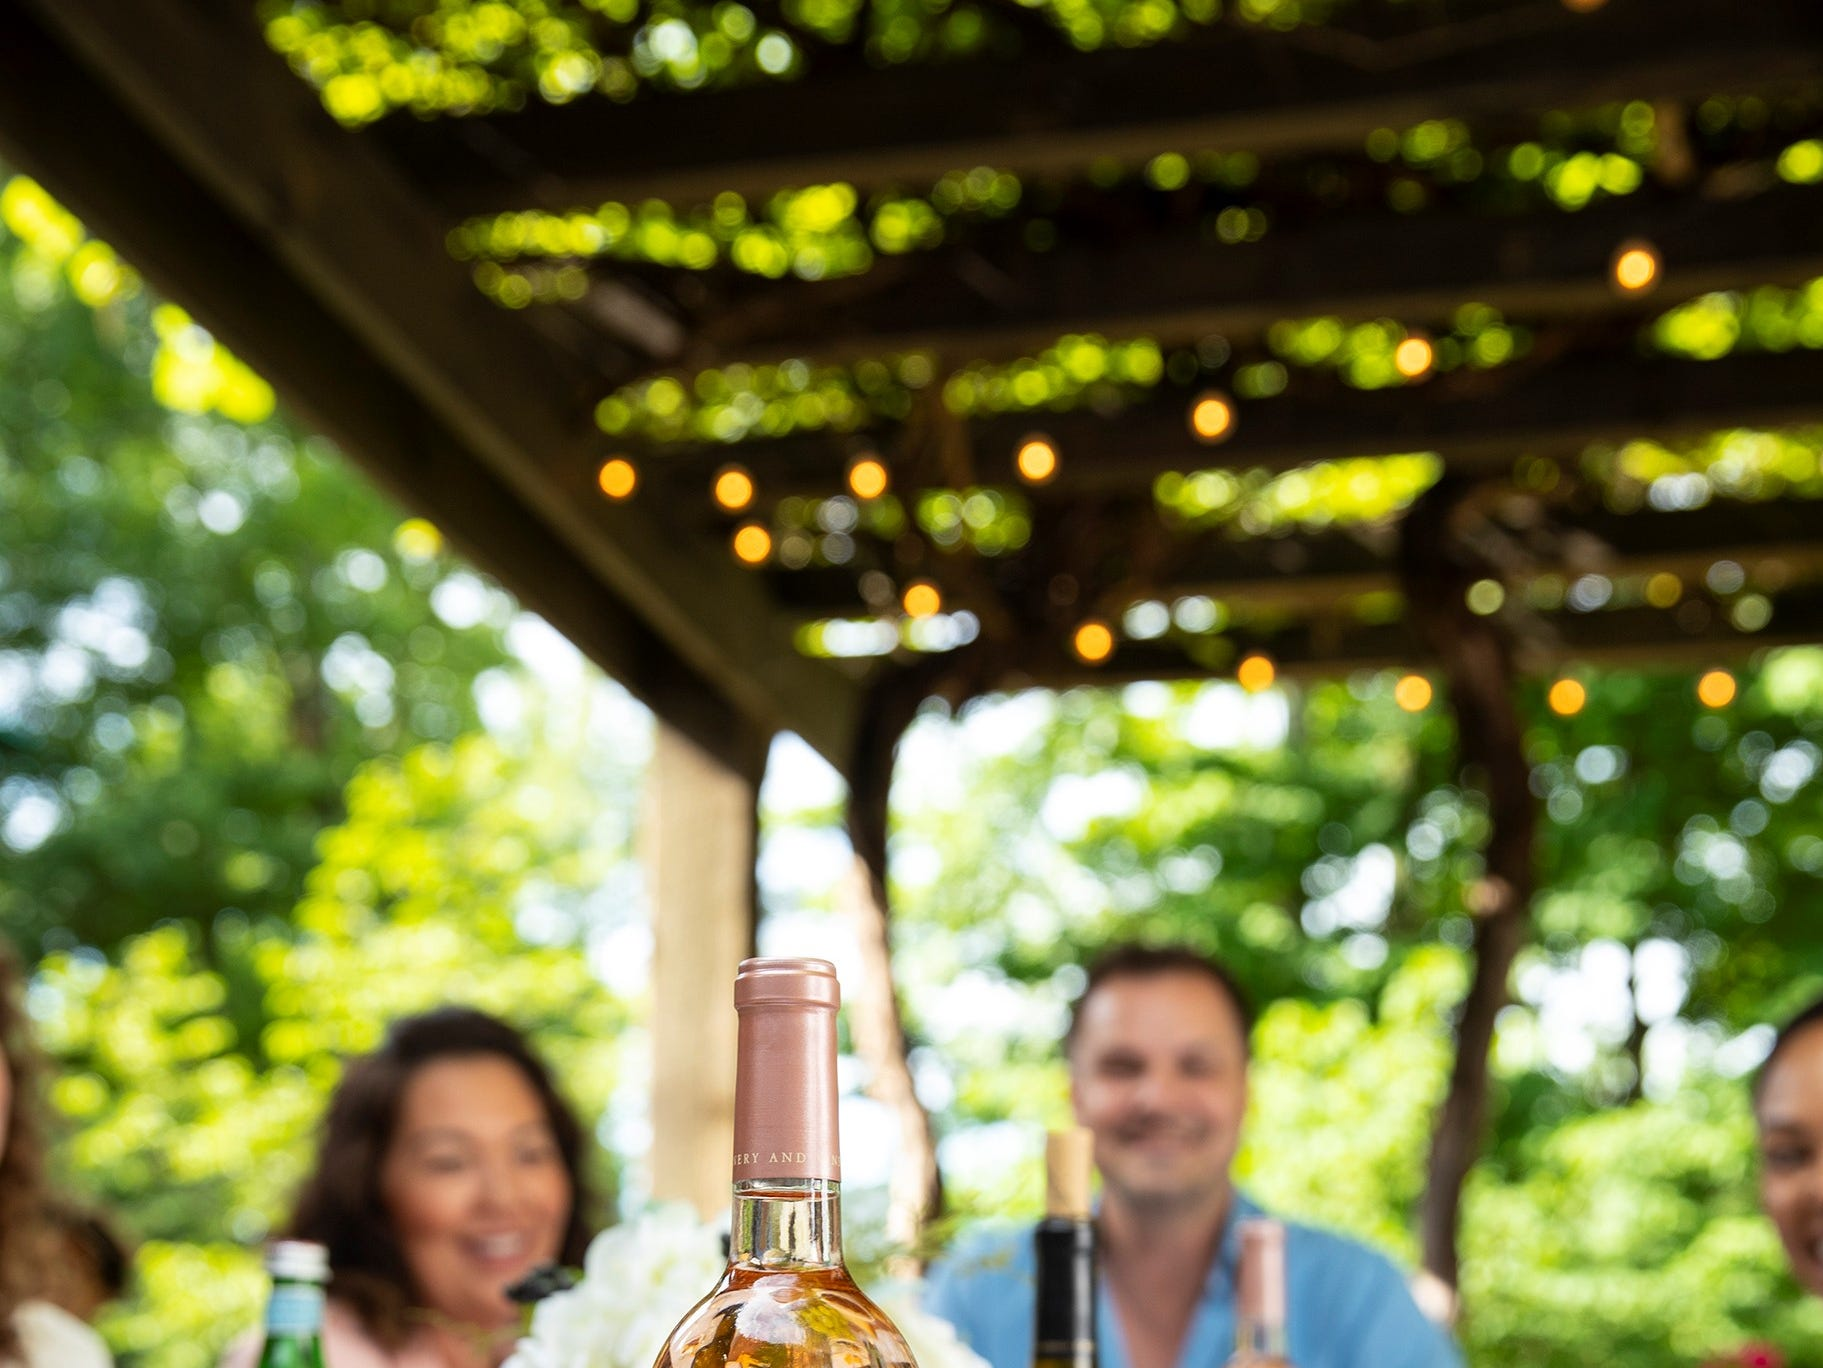 Oliver Winery is known for sweet wines such as this cherry Moscato being enjoyed on the patio.